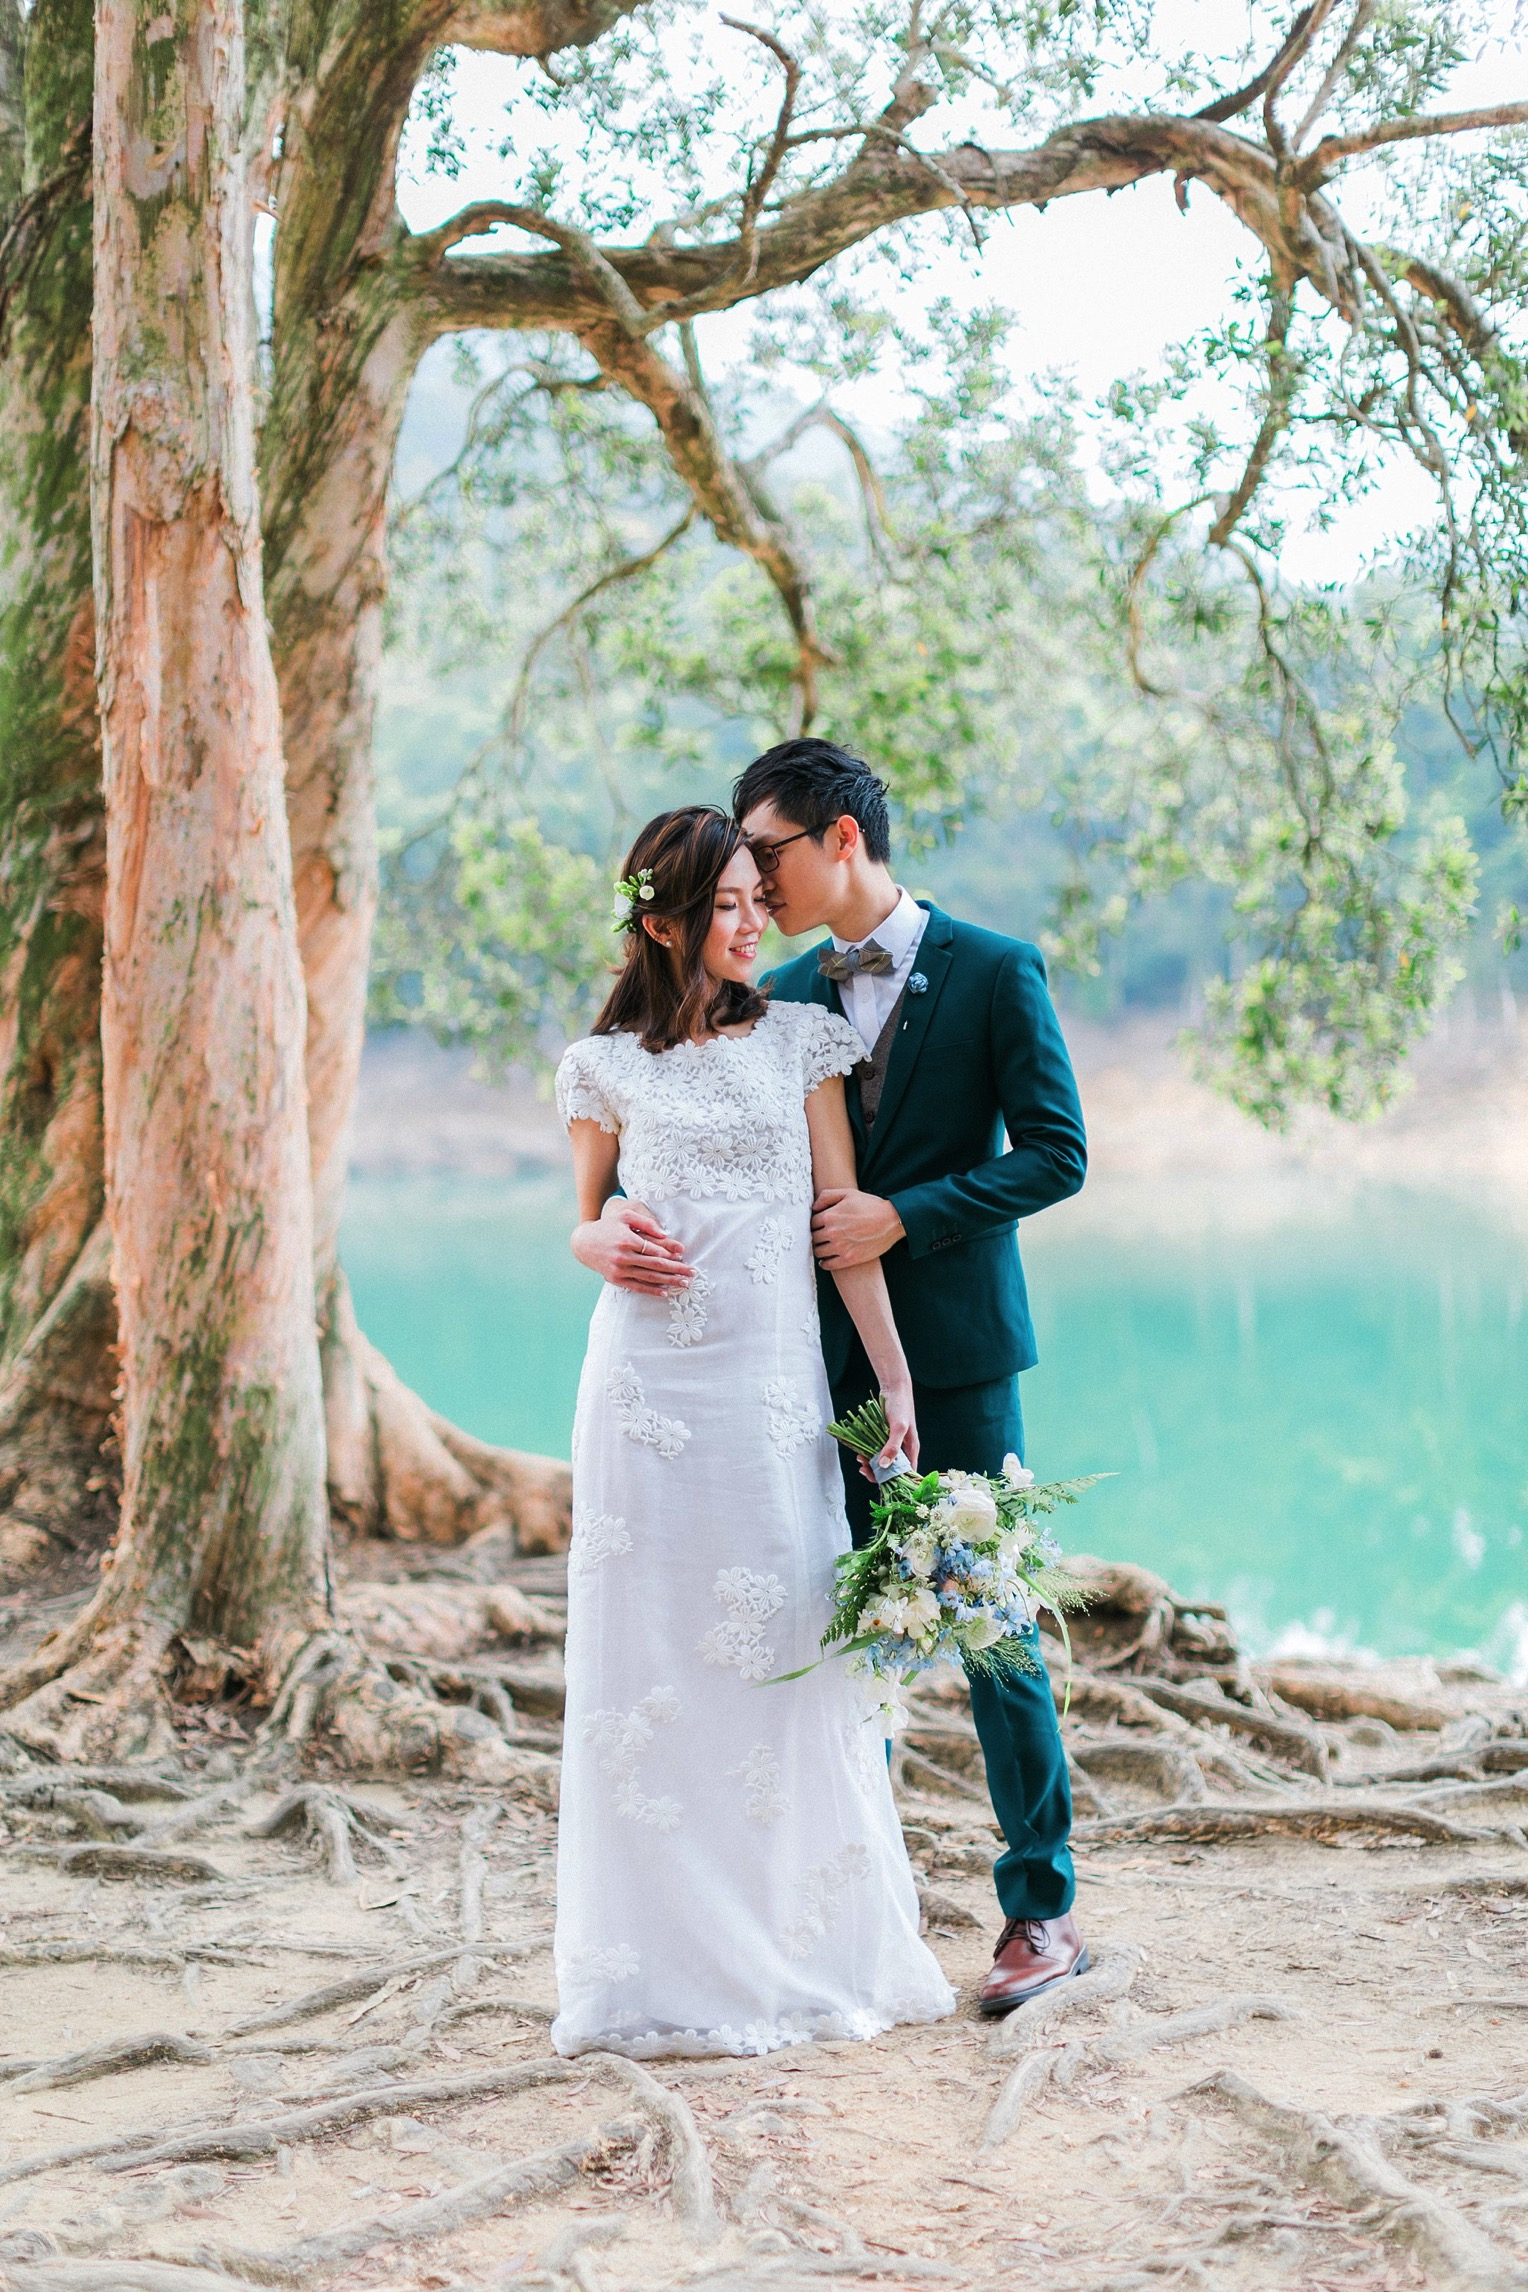 The Forest & Lake: A Hong Kong pre-wedding shoot. Part I | French ...